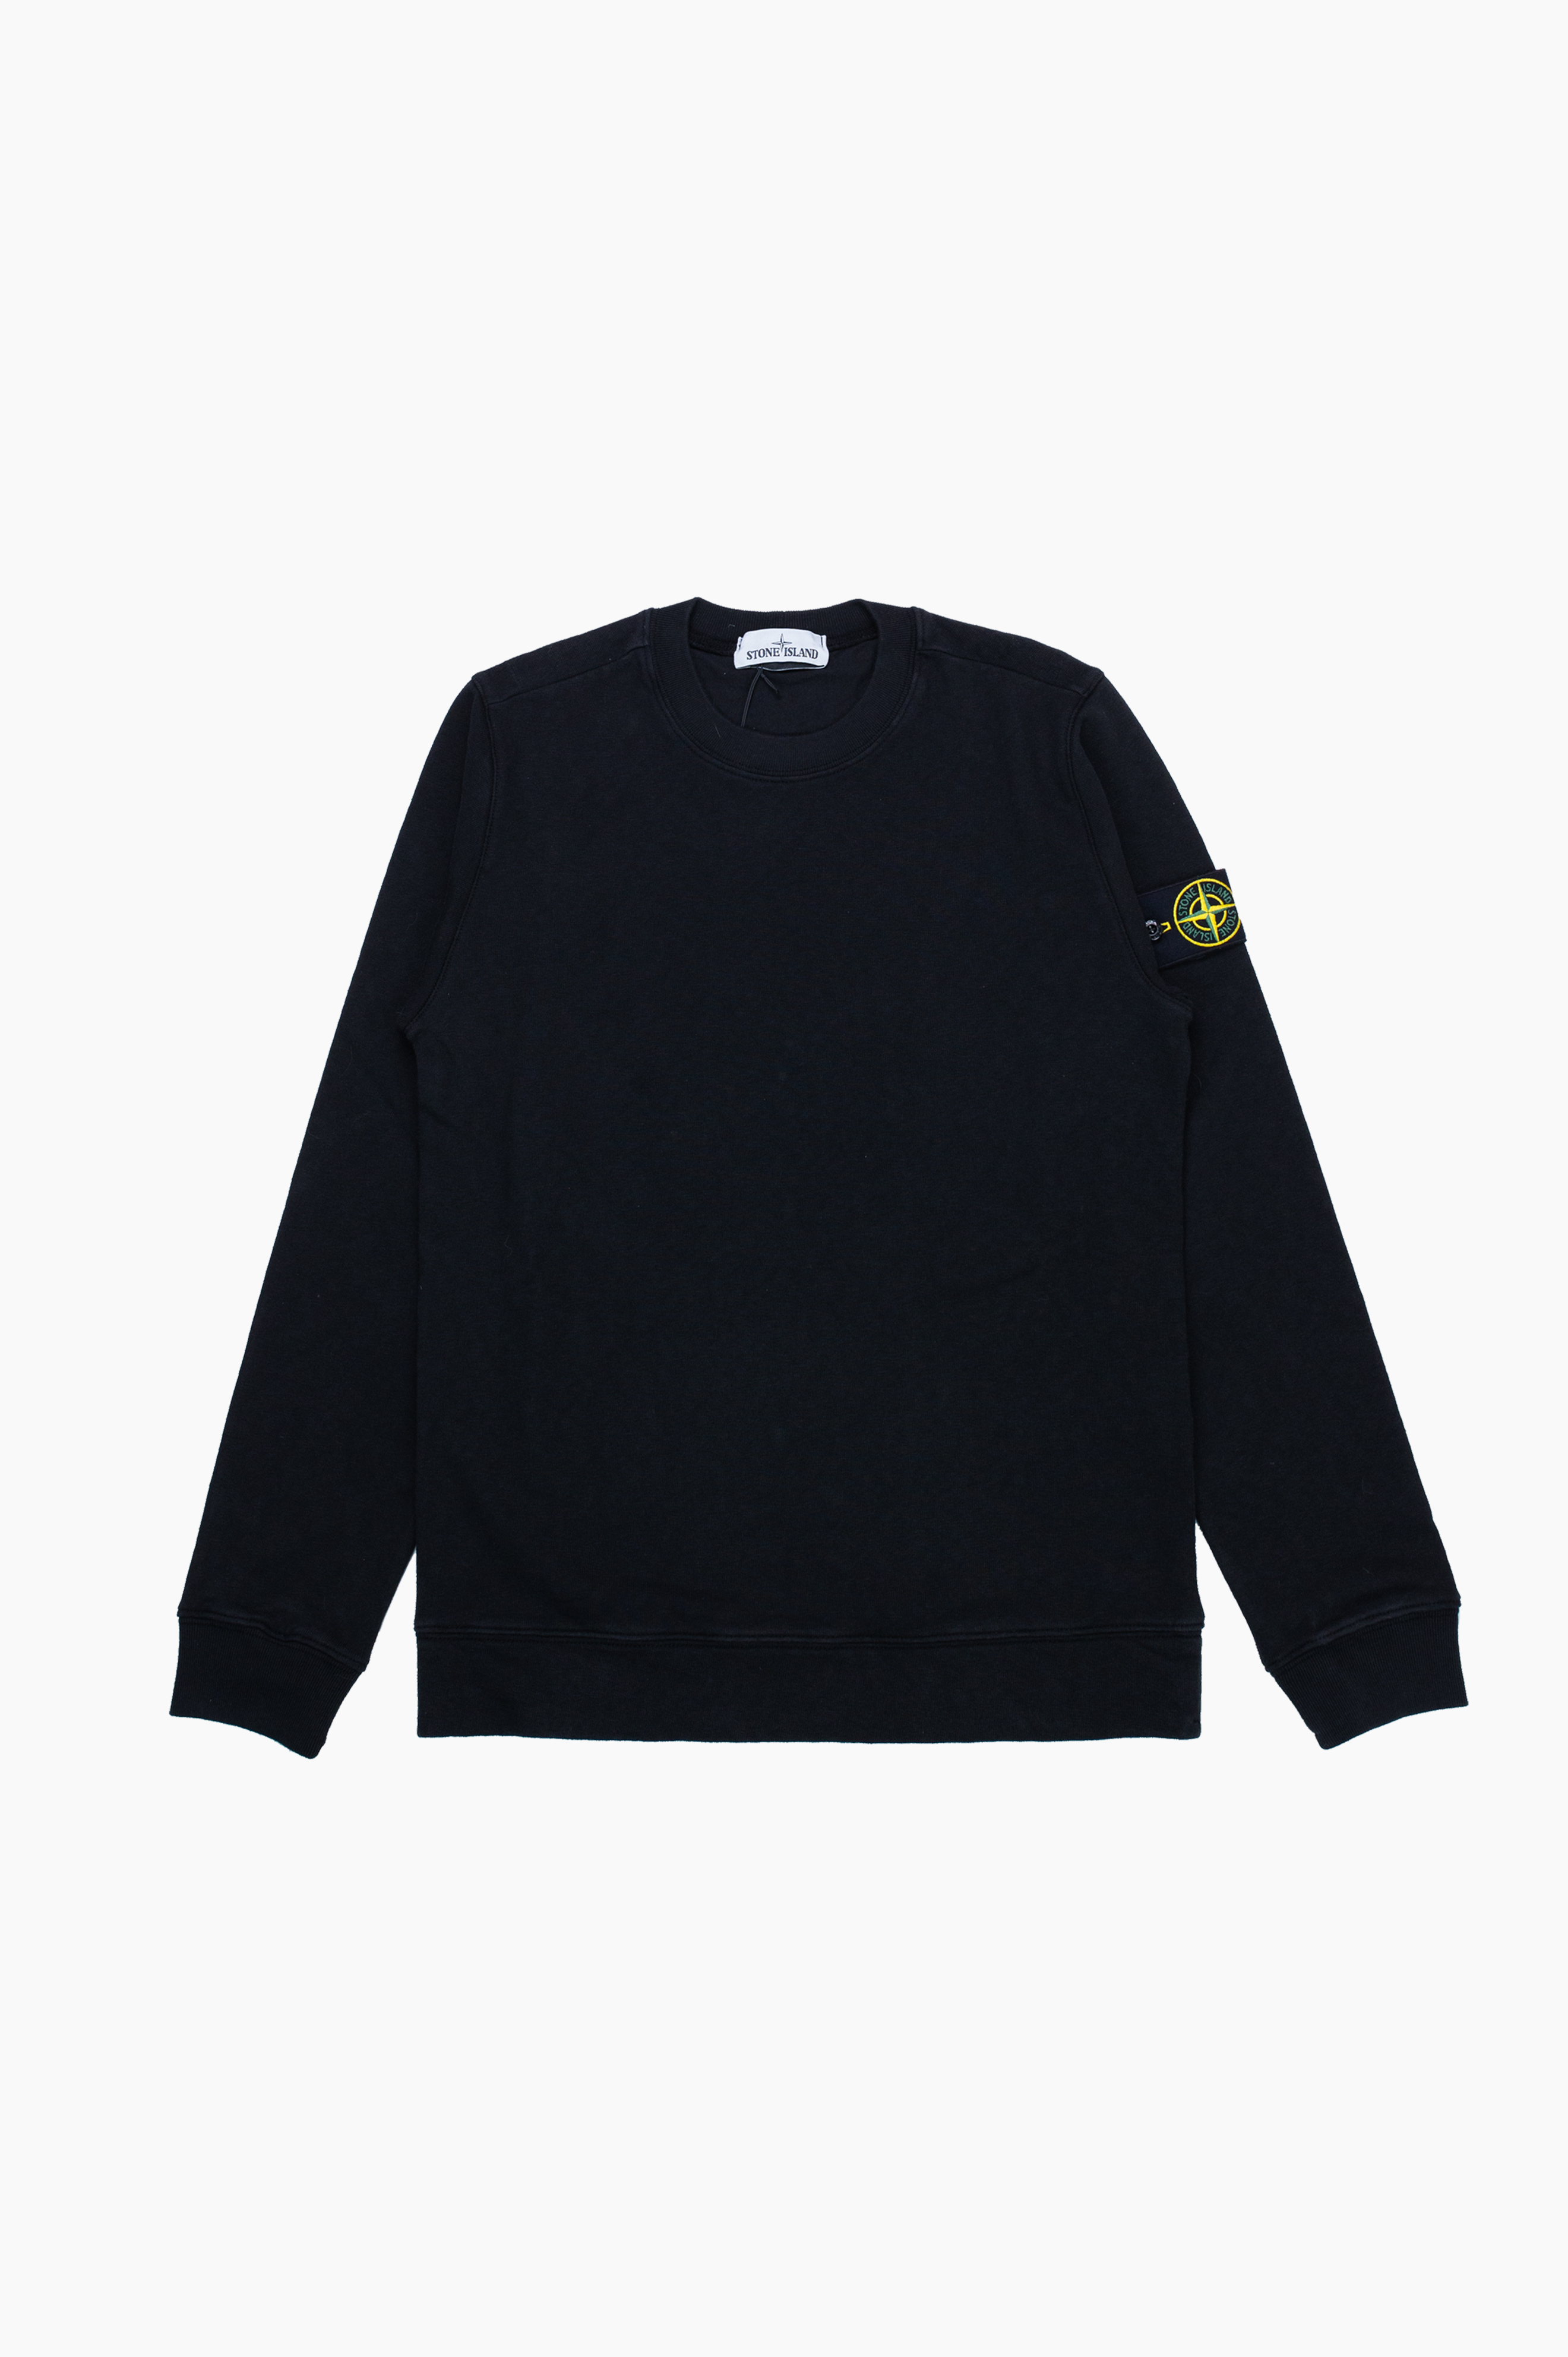 'Old' Dye Treatment Sweatshirt Black